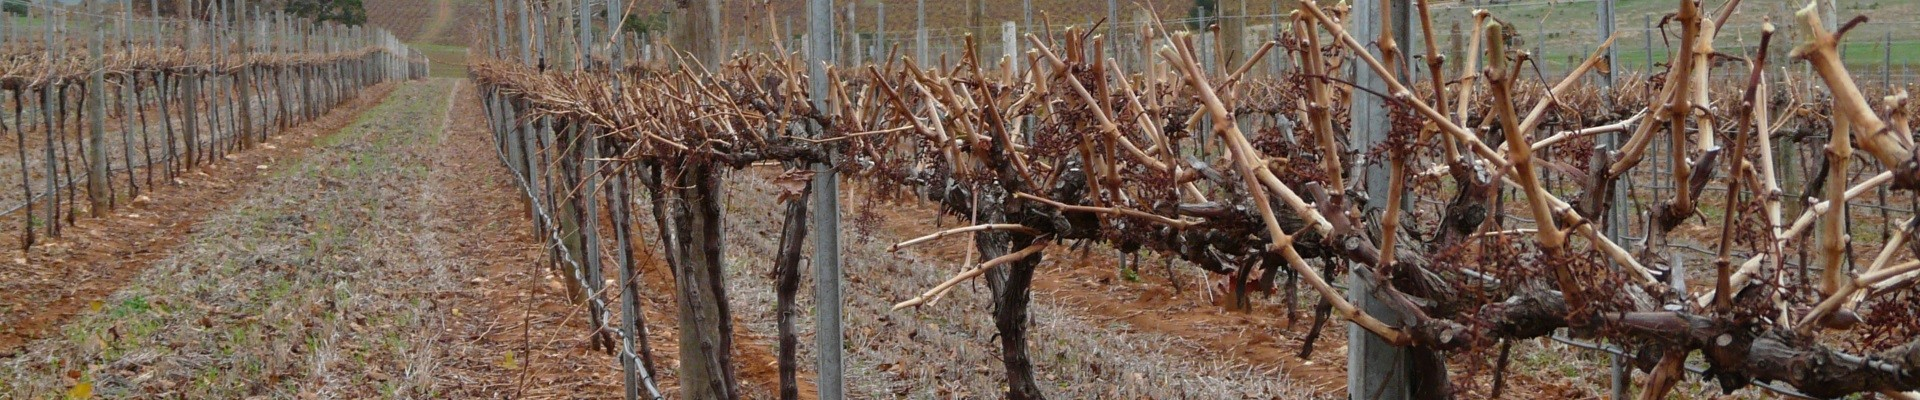 Pruned vines with Ackland Vineyard Services